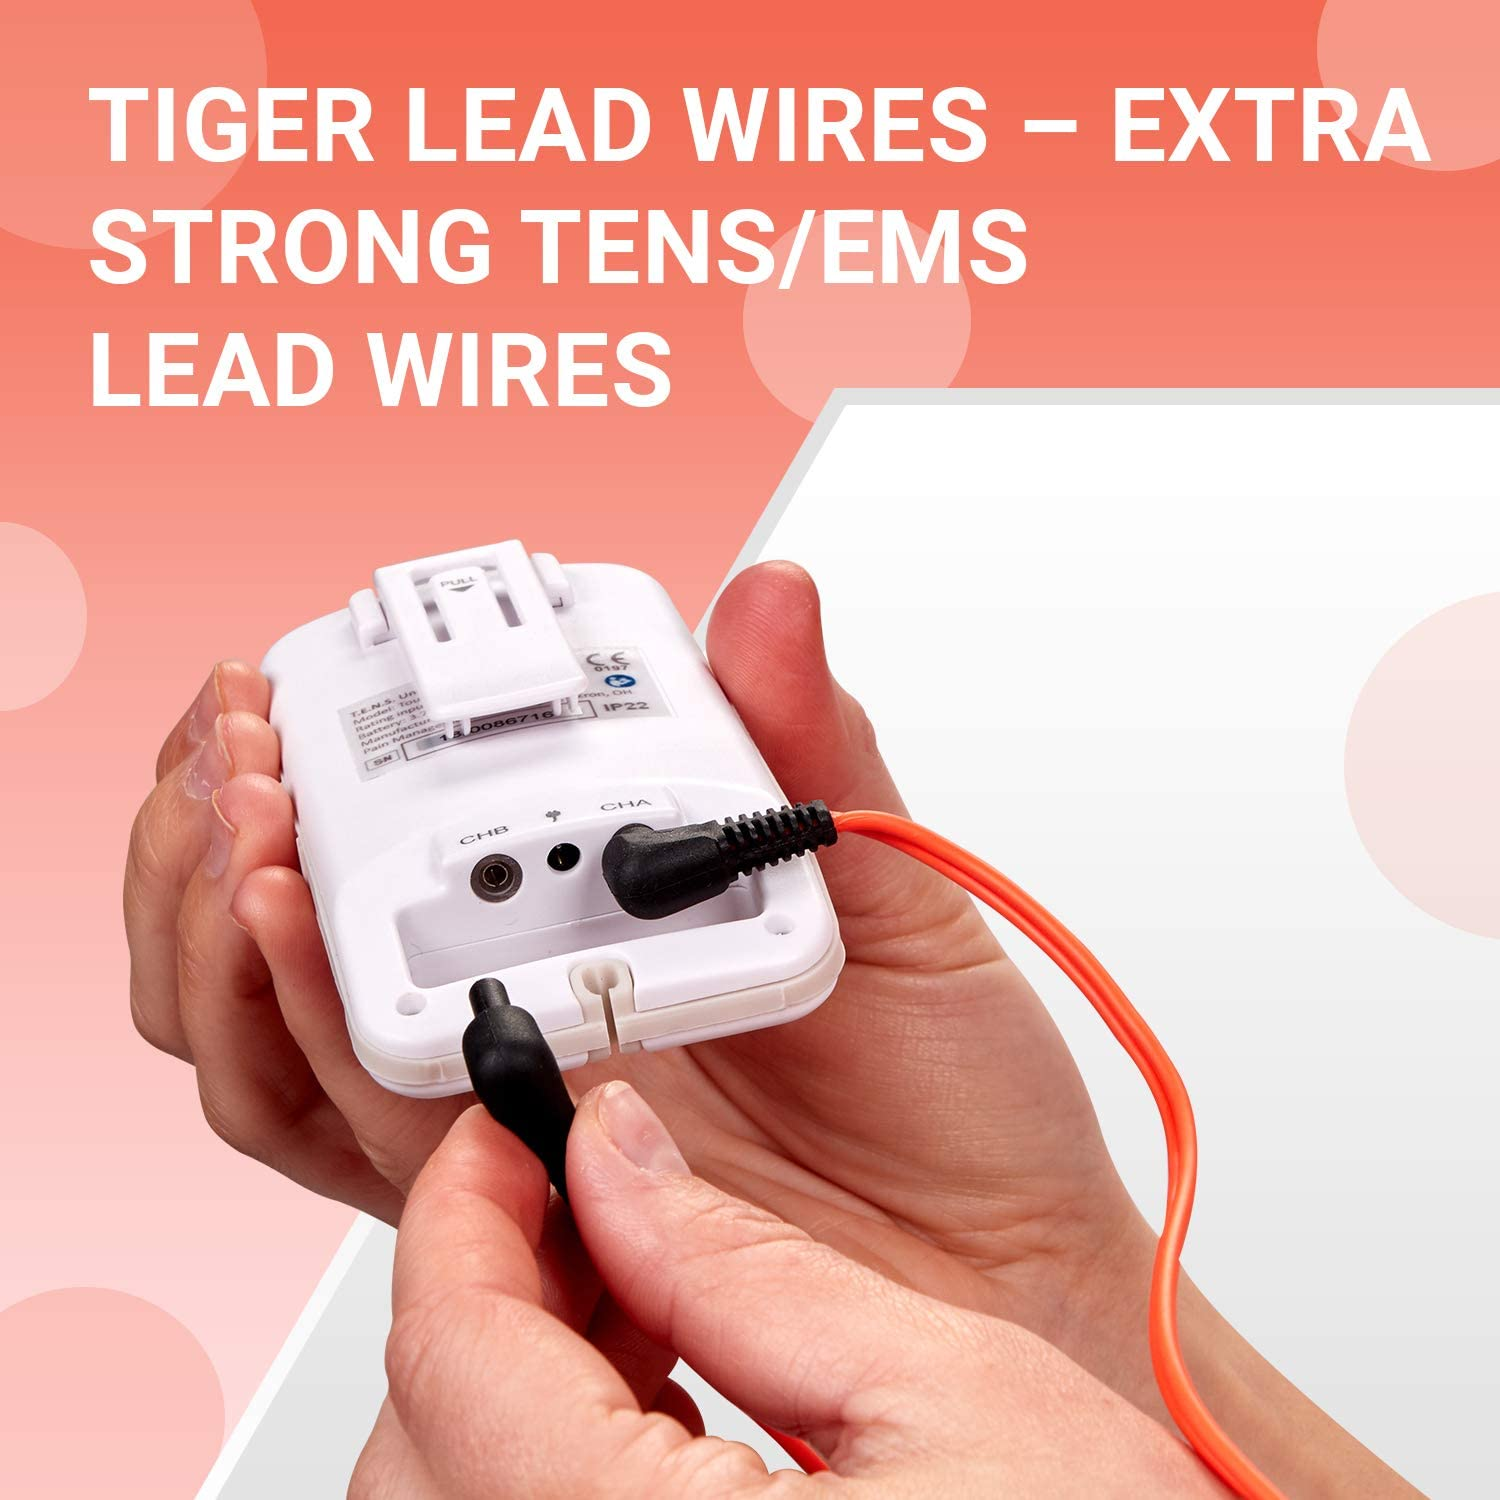 Universal TENS Lead Wires by PMT, Fits Most All Electrotherapy Devices and TENS/EMS electrodes (Premium Grade)